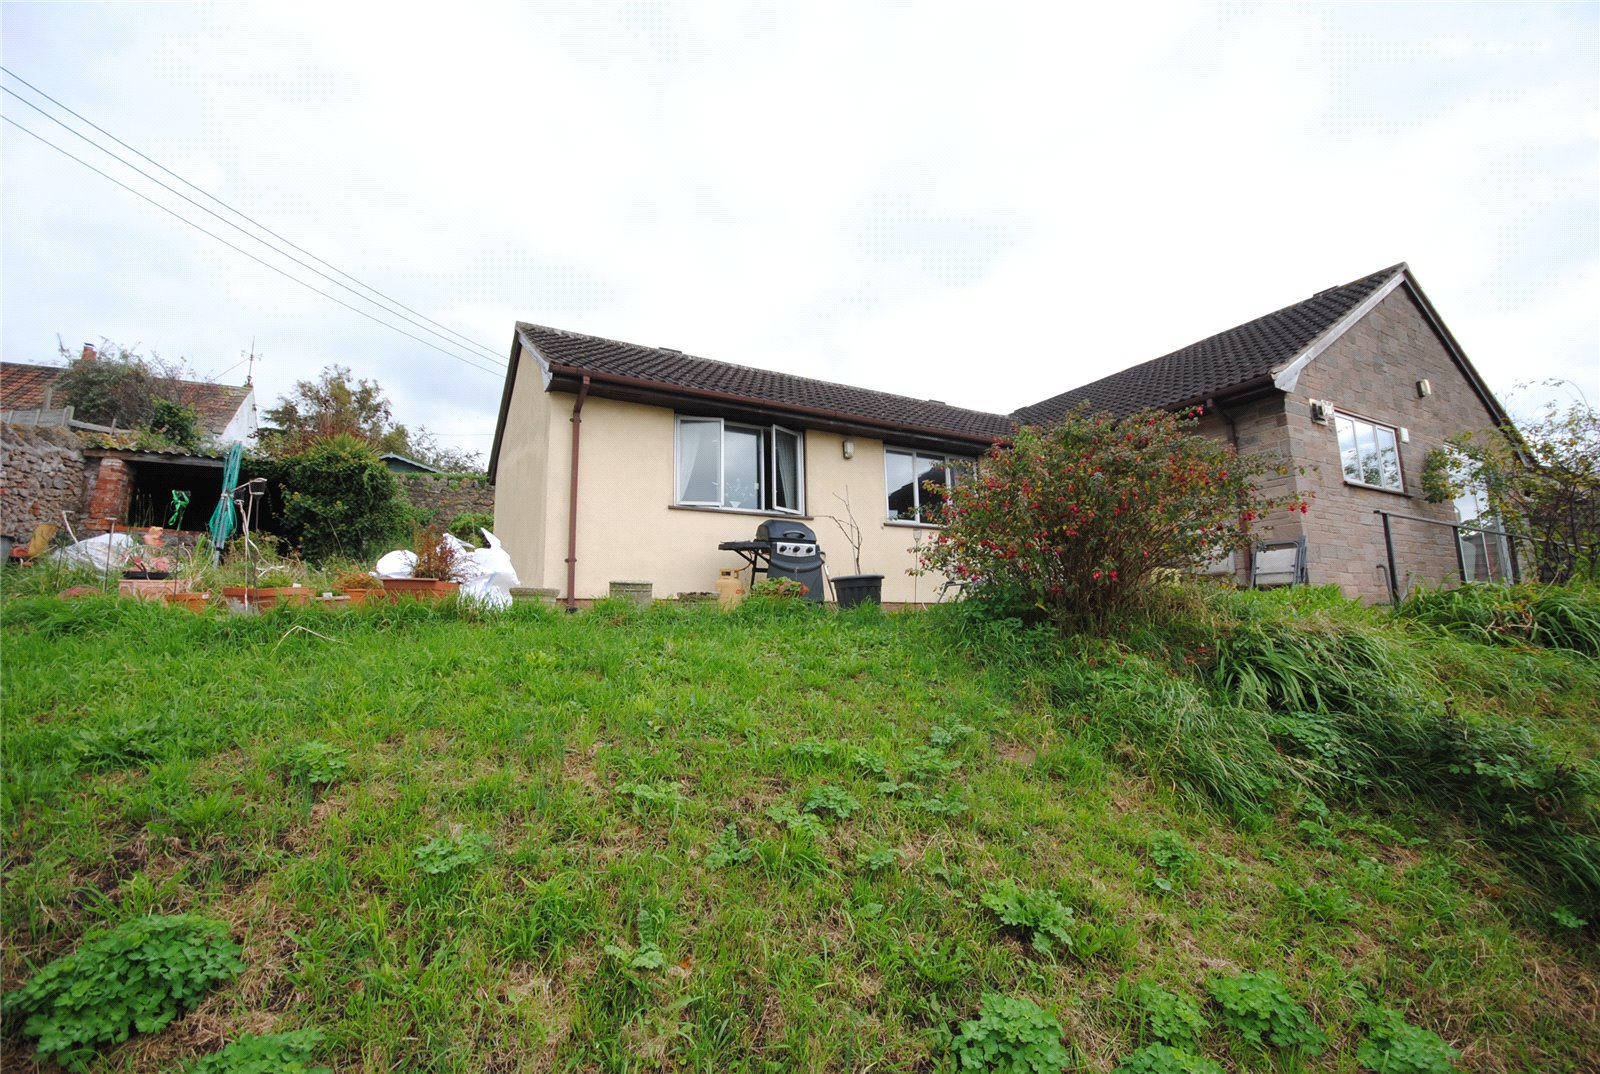 2 Bedrooms Bungalow for sale in The Batch Draycott Cheddar BS27